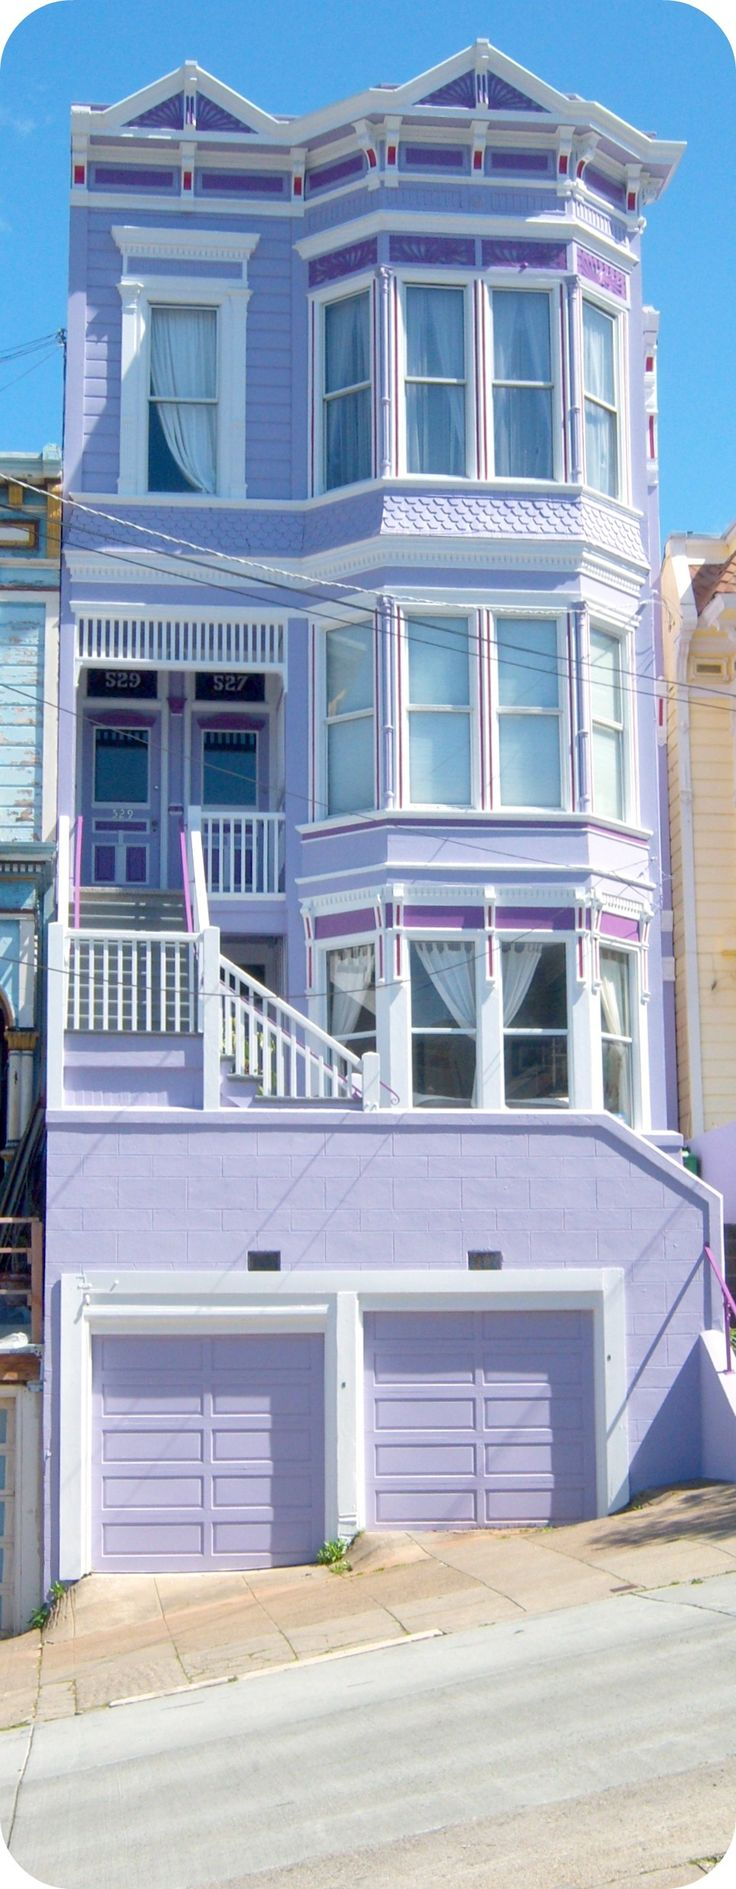 We love this purple house in our city by the Bay!